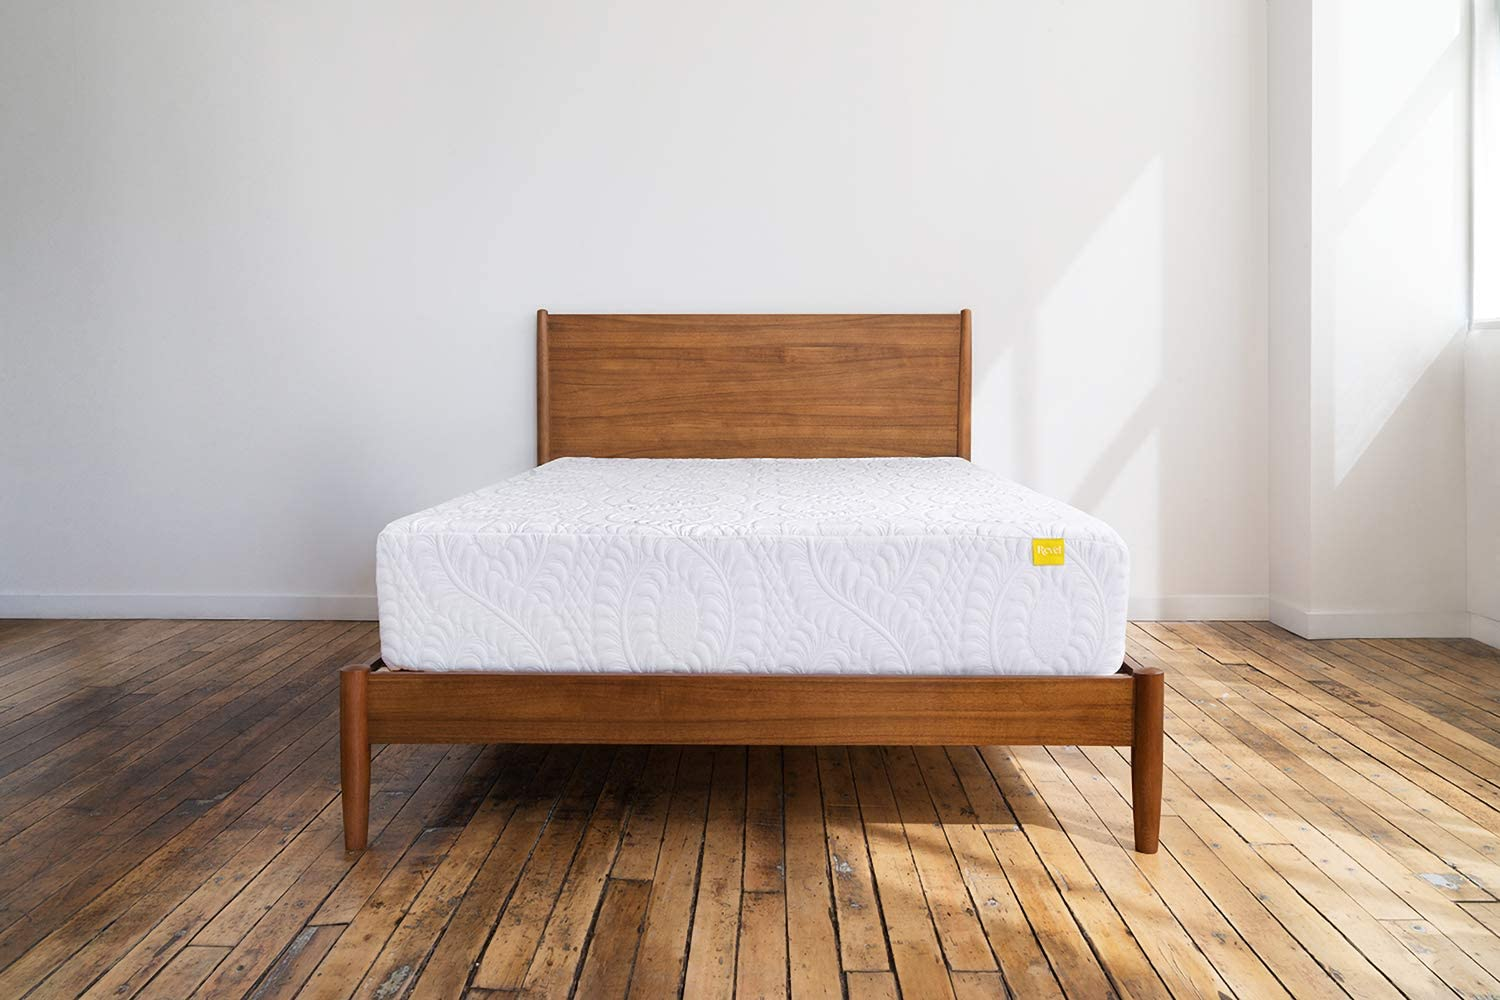 Revel Premium Cool Mattress (King), Featuring All Climate Cooling Gel Memory Foam and LiftTex Alternative Latex, Made in the USA with a 10-Year Warranty, Amazon Exclusive